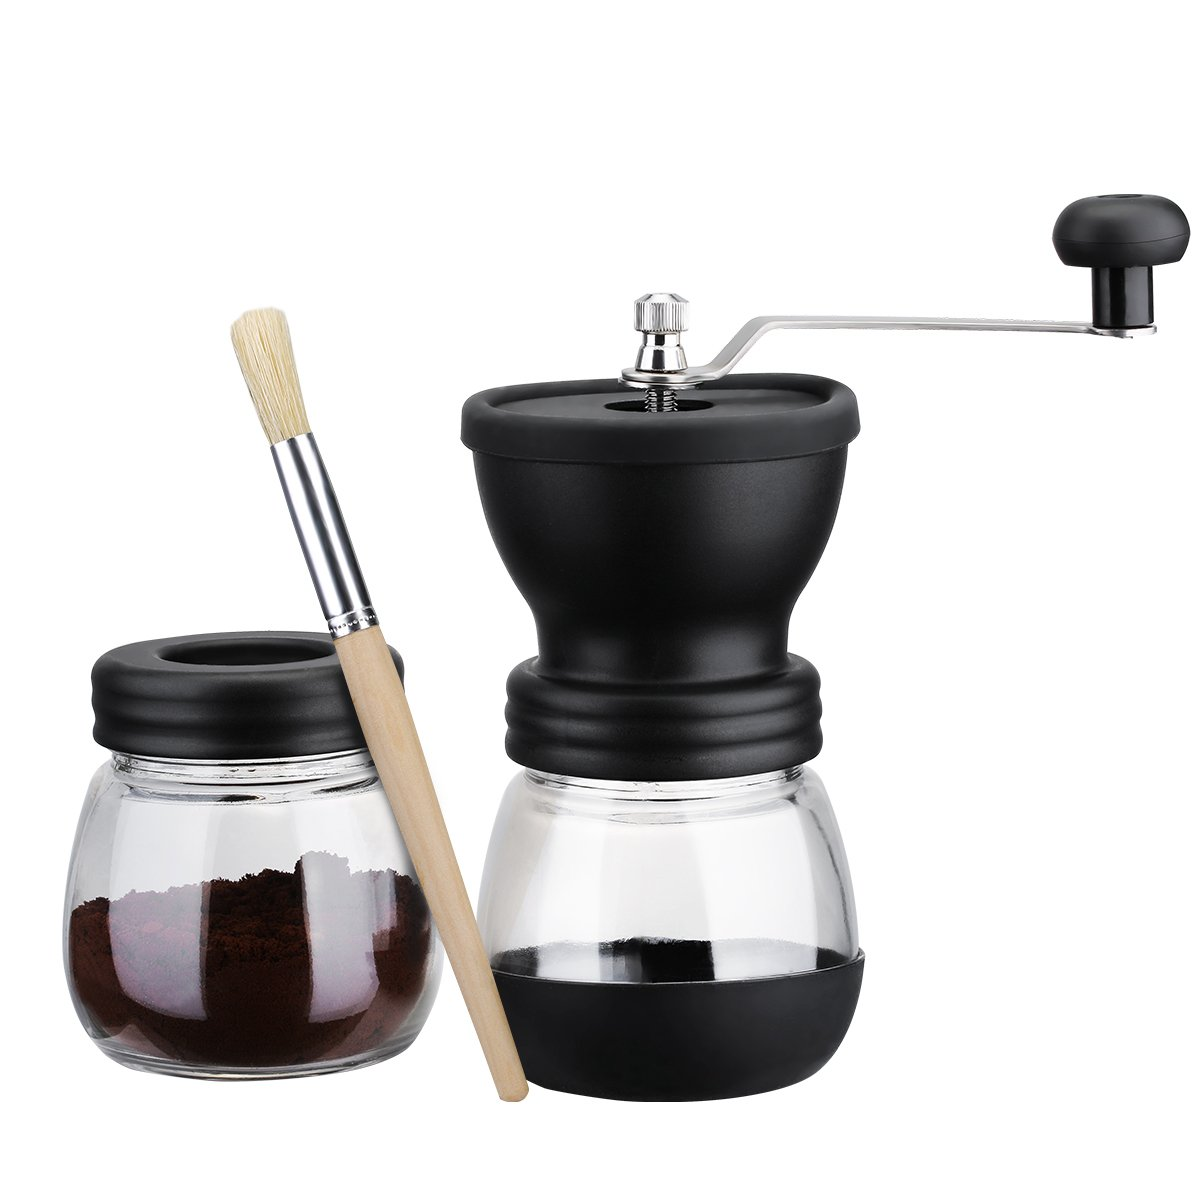 Do4U Manual Coffee Mill Grinder with Ceramic Burrs, Two Clear Glass Jars, Stainless Steel Handle and Silicon Cover (Black)